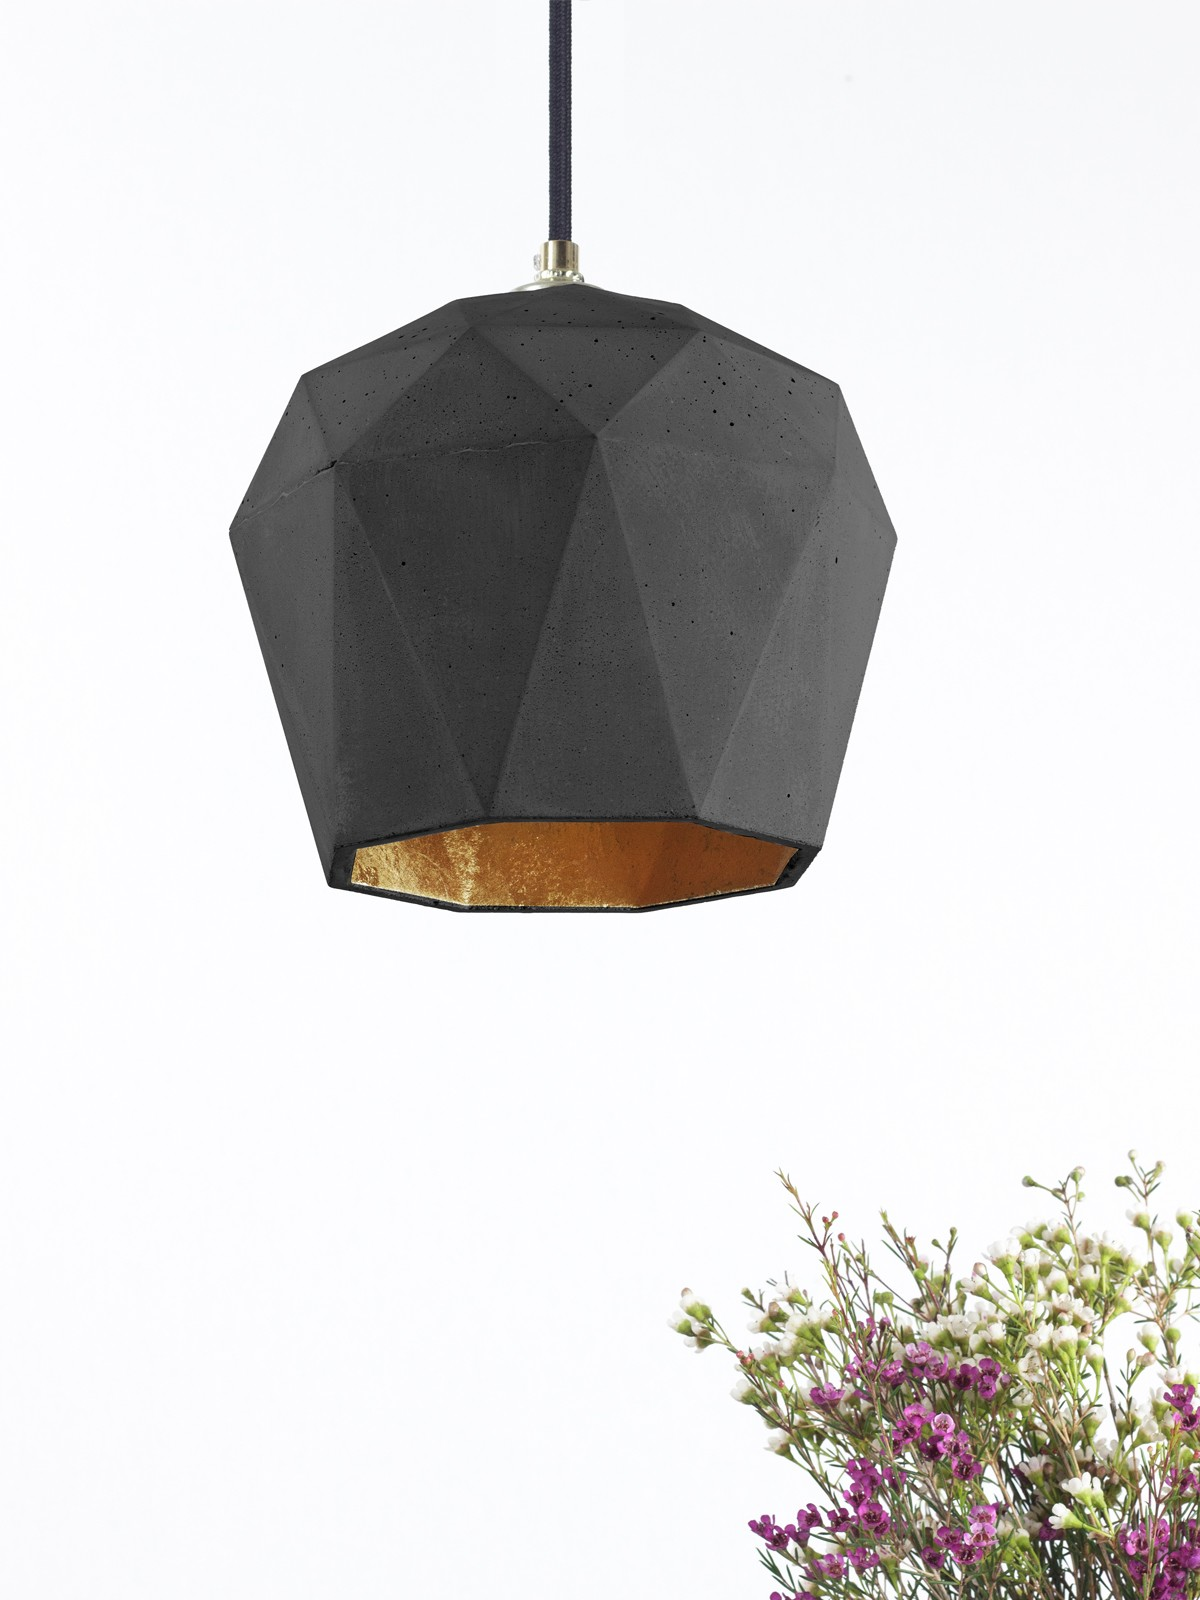 [T3] Pendant Light Triangle Dark Grey Concrete, Gold Plating